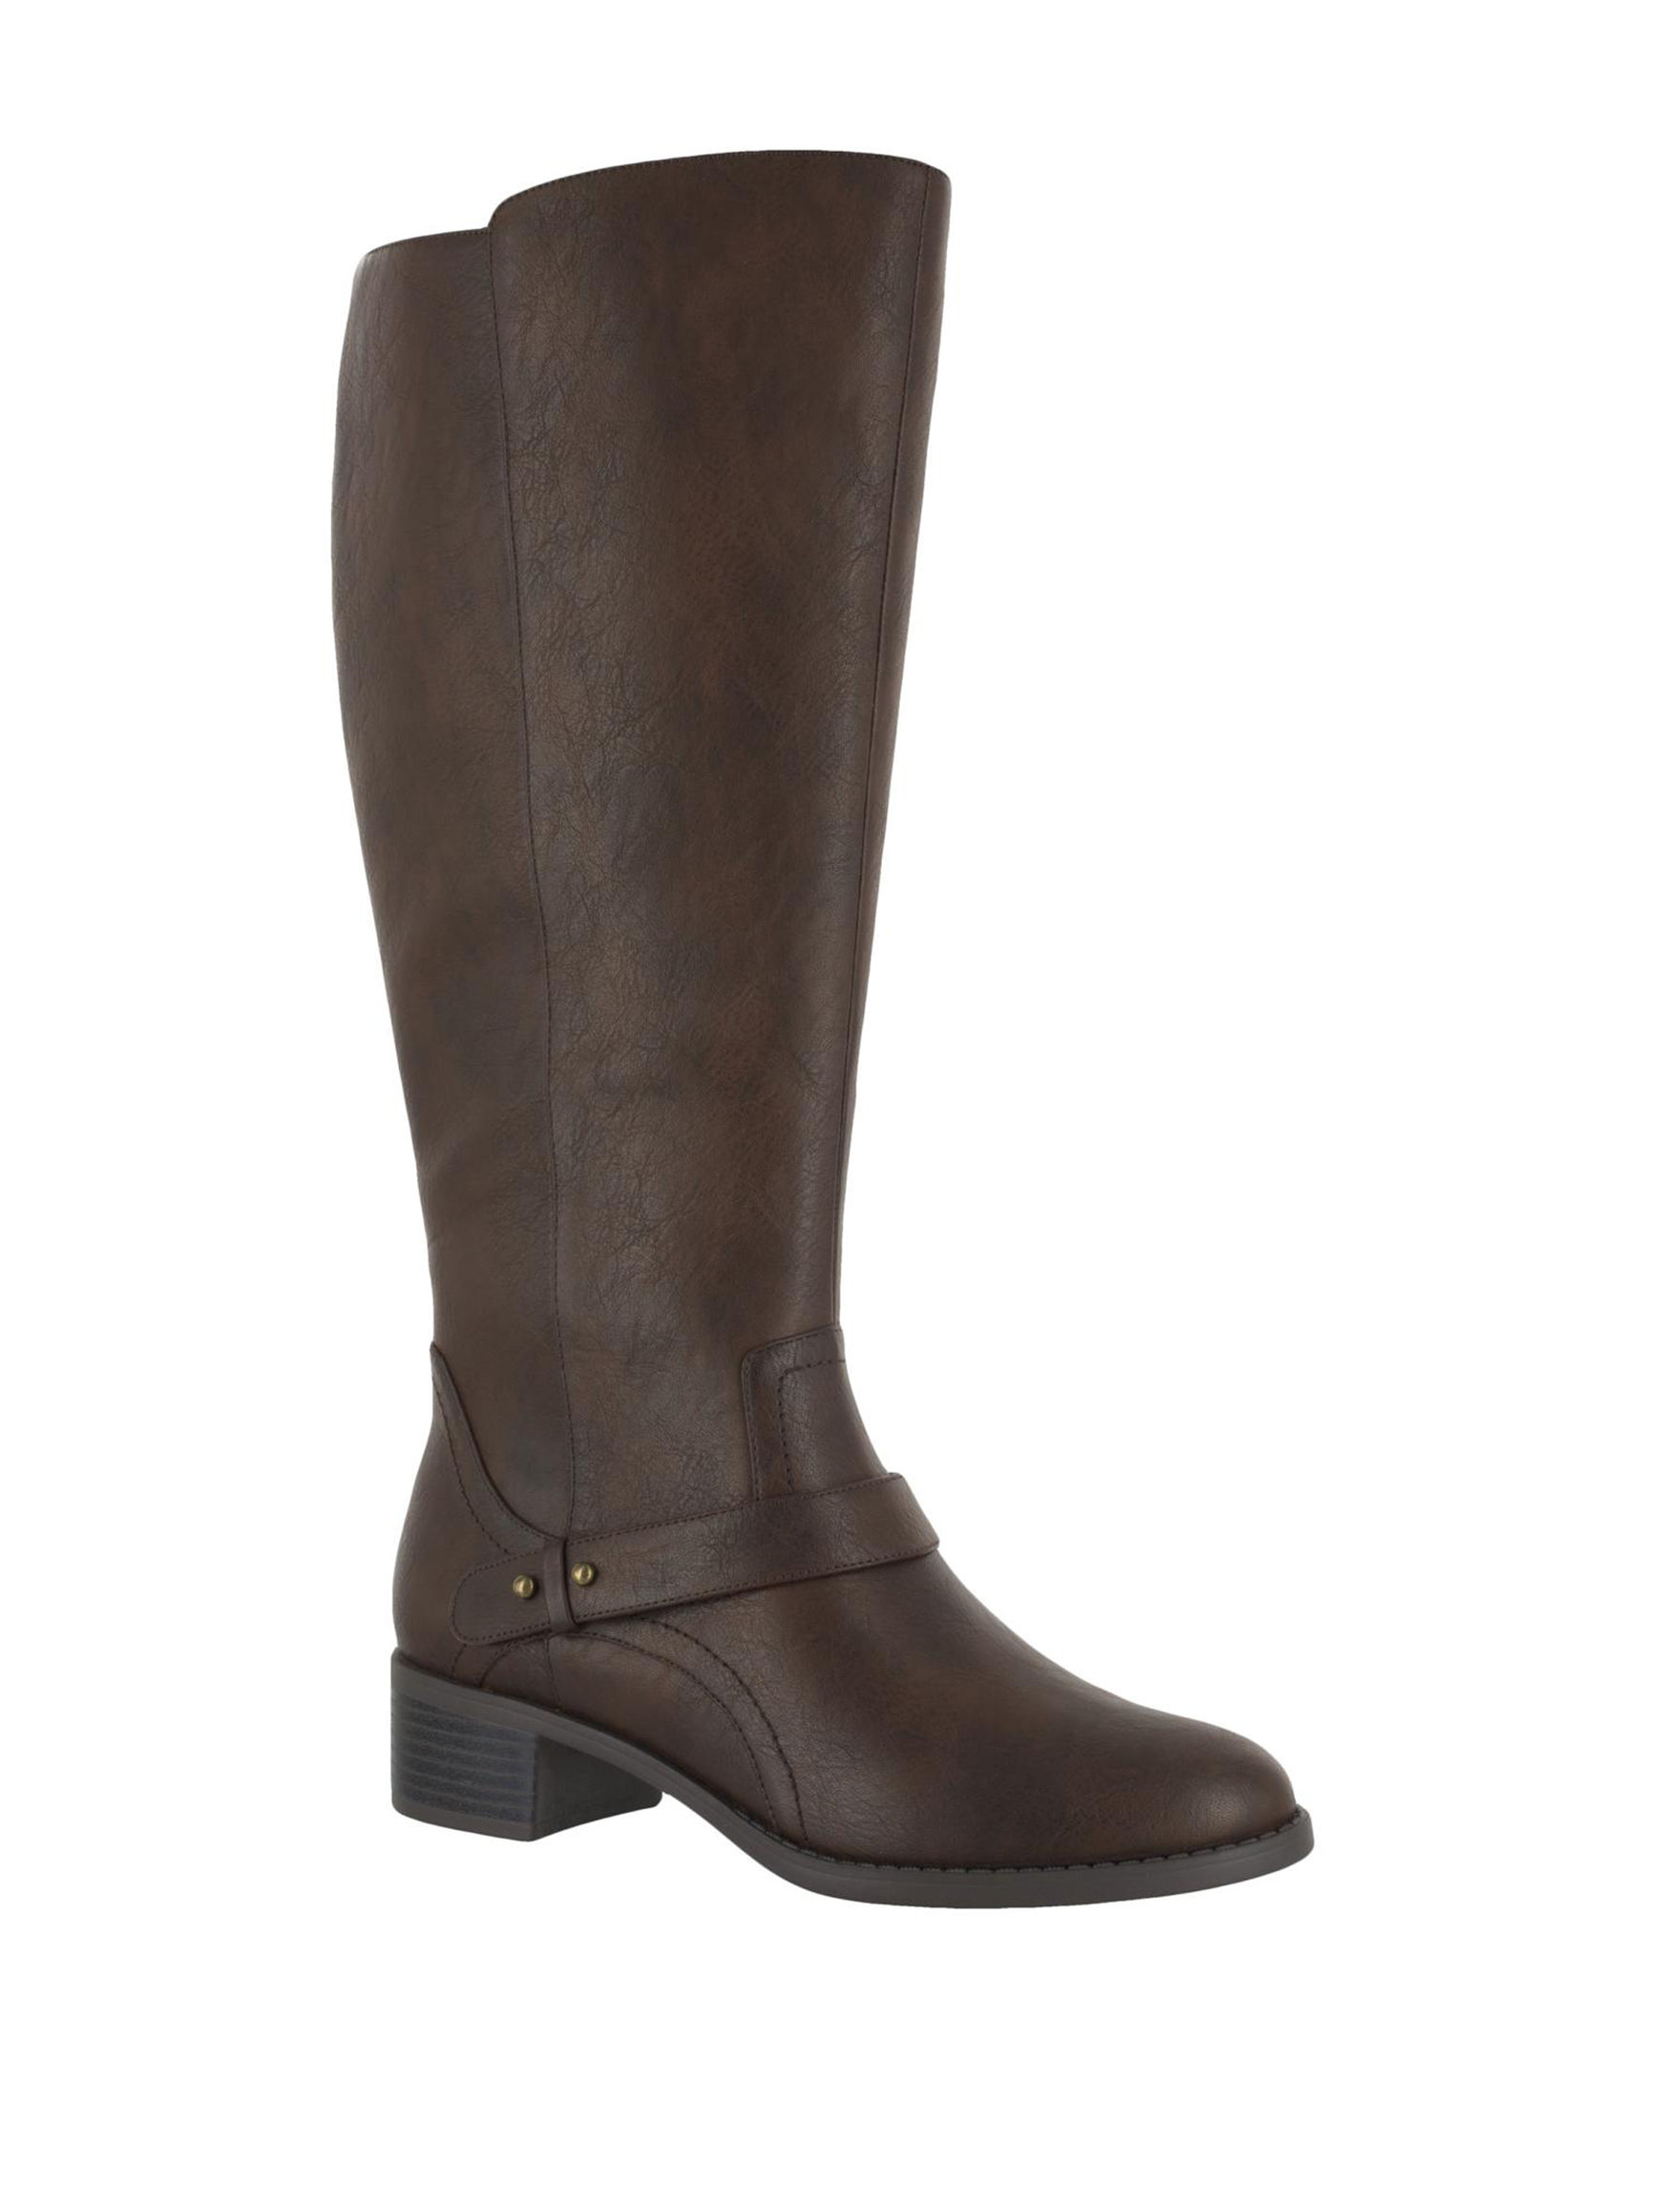 Easy Street Brown Riding Boots Wide Calf